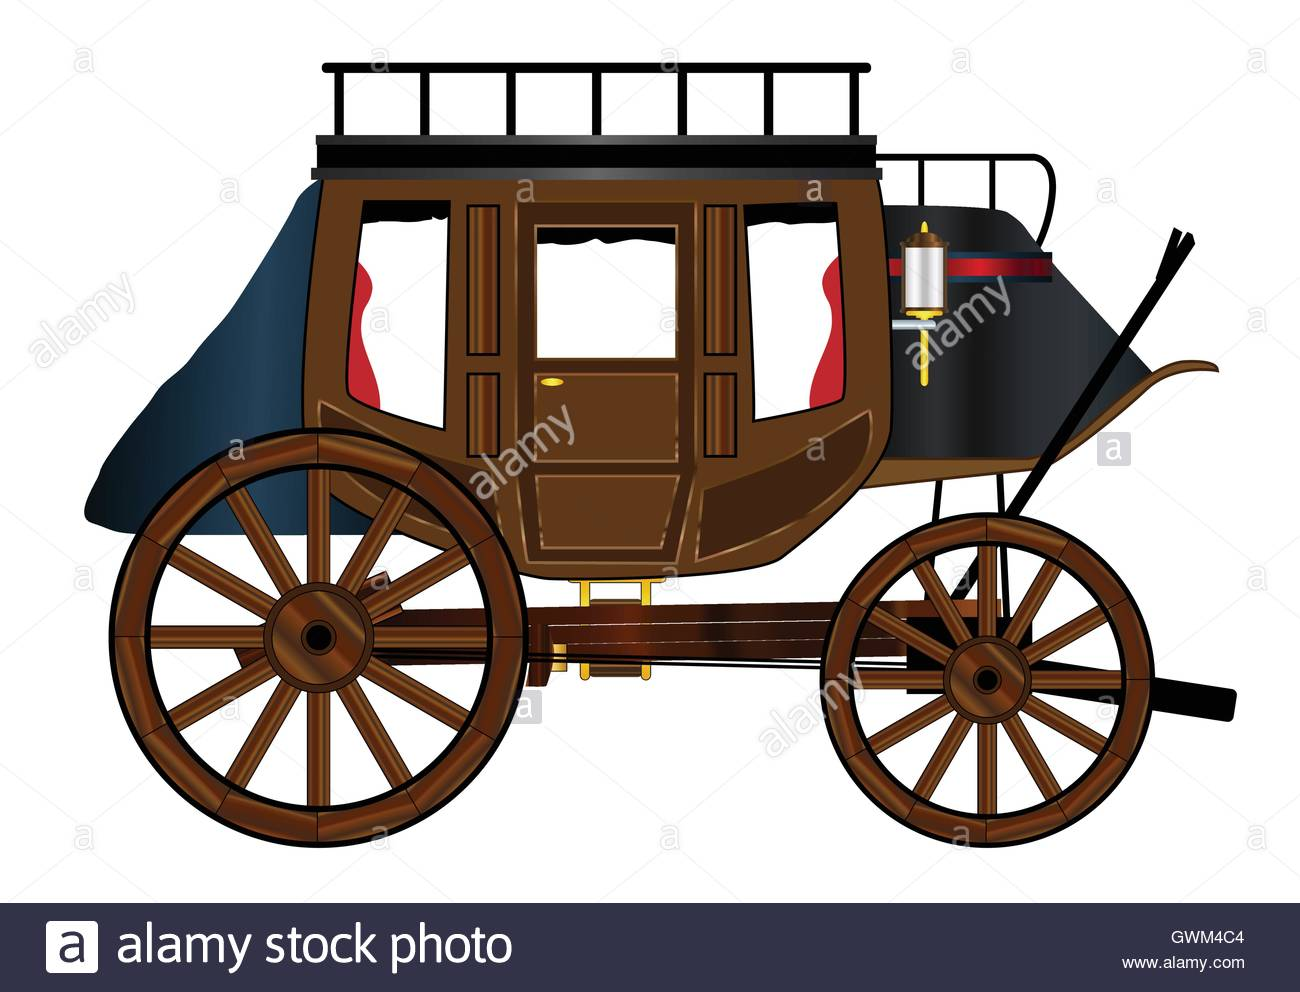 1300x992 A Typical Western Stage Coach Drawing Over A White Background